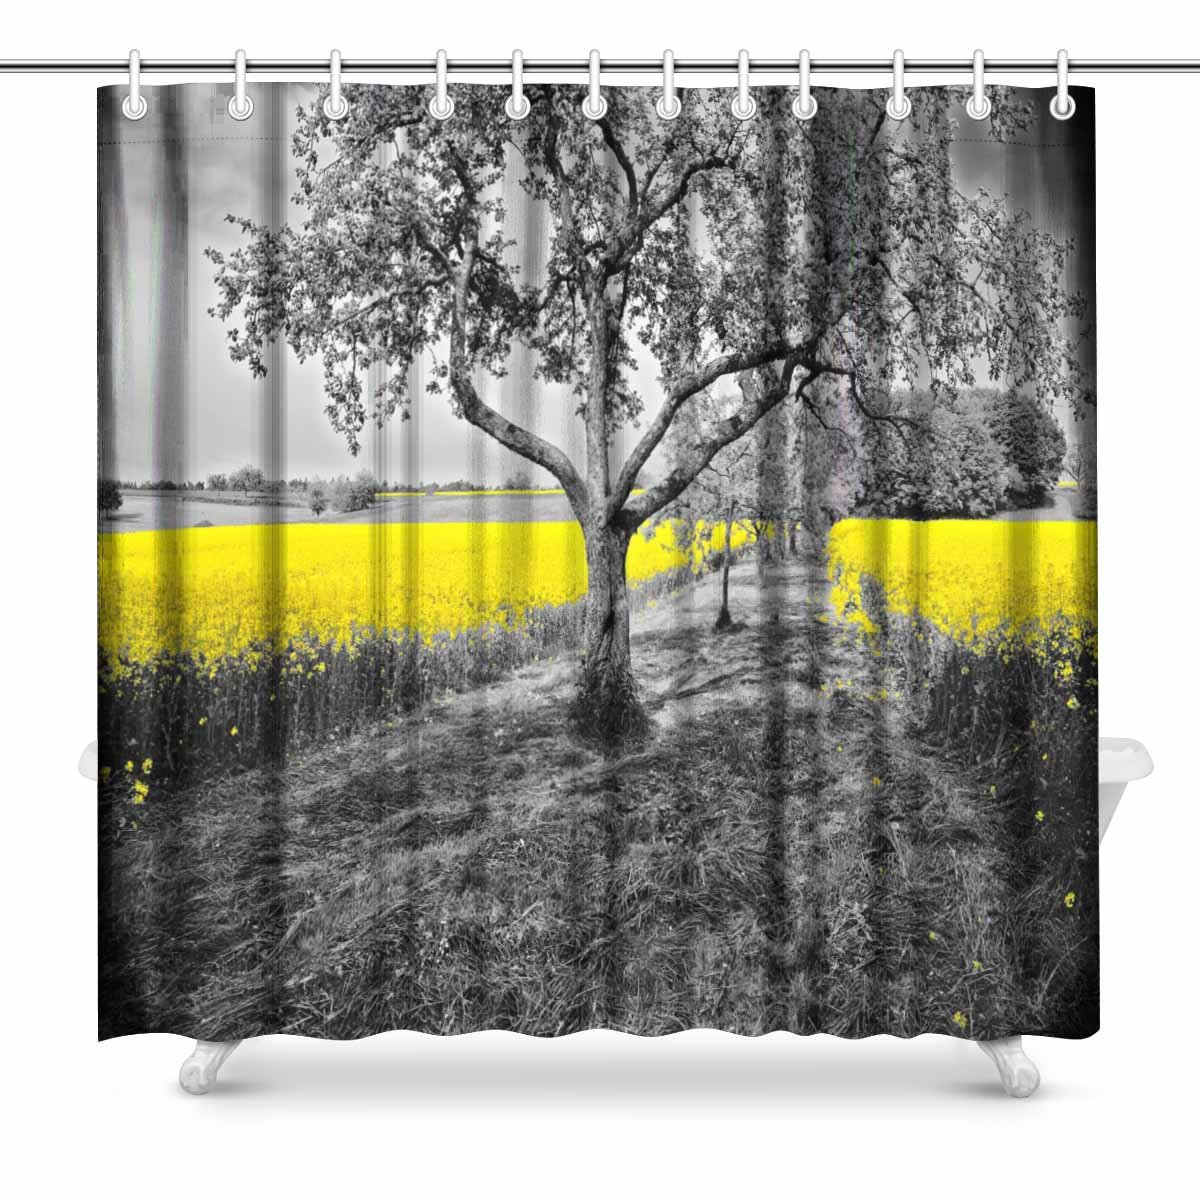 INTERESTPRINT Shining Yellow Oilseed Rape Fields In A Black And White Landscape Scene Decor Art Print Bathroom Shower Curtain Decorations Fabric Extra